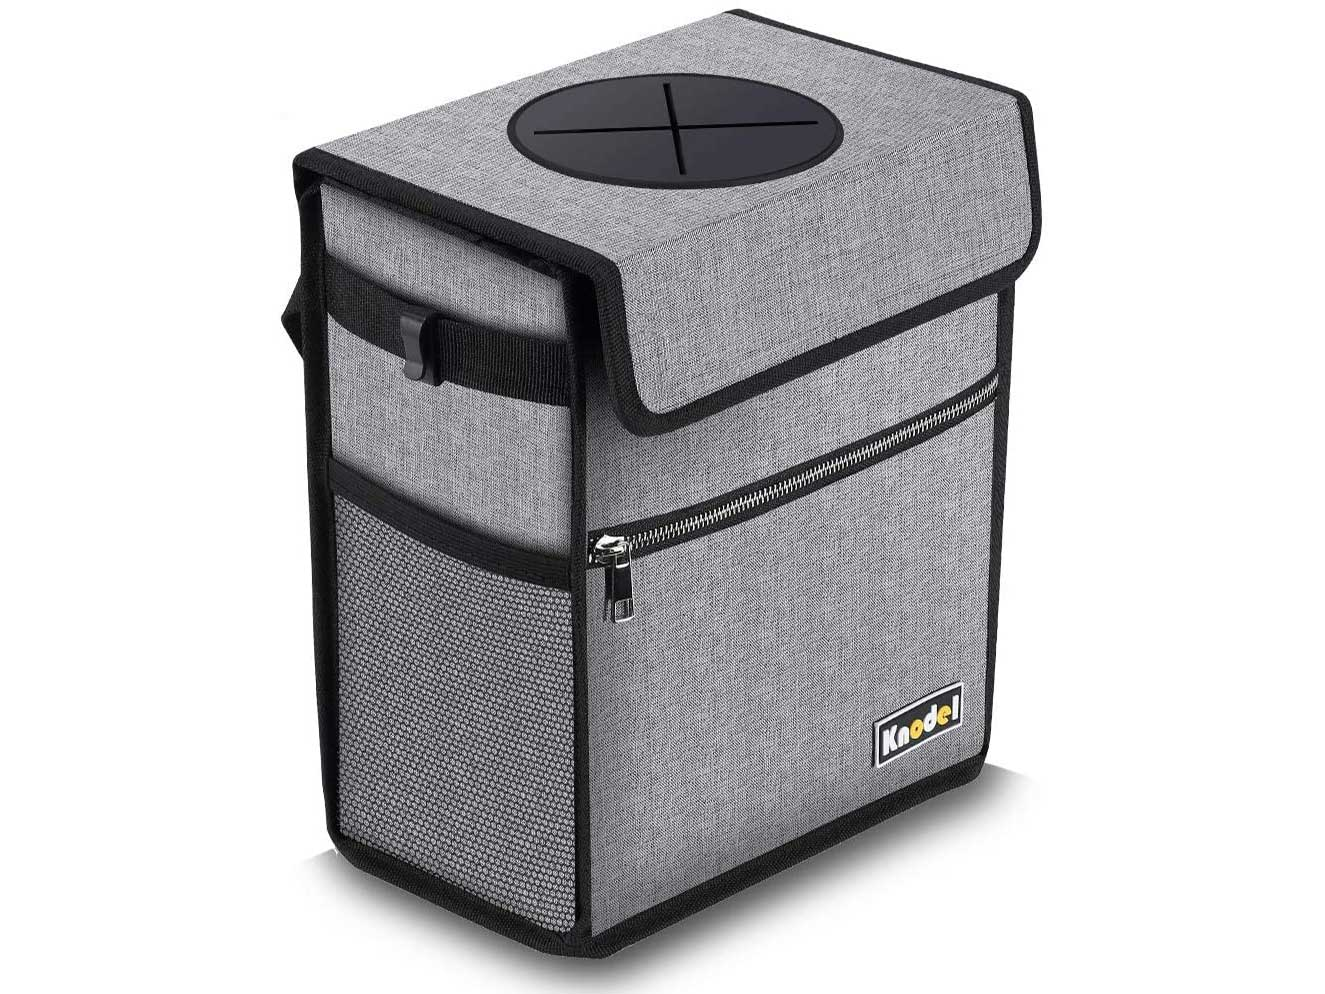 Knodel Car Trash Can with Lid, Leak-Proof Car Garbage Can with Storage Pockets, Waterproof Auto Garbage Bag Hanging for Headrest (Large, Gray)